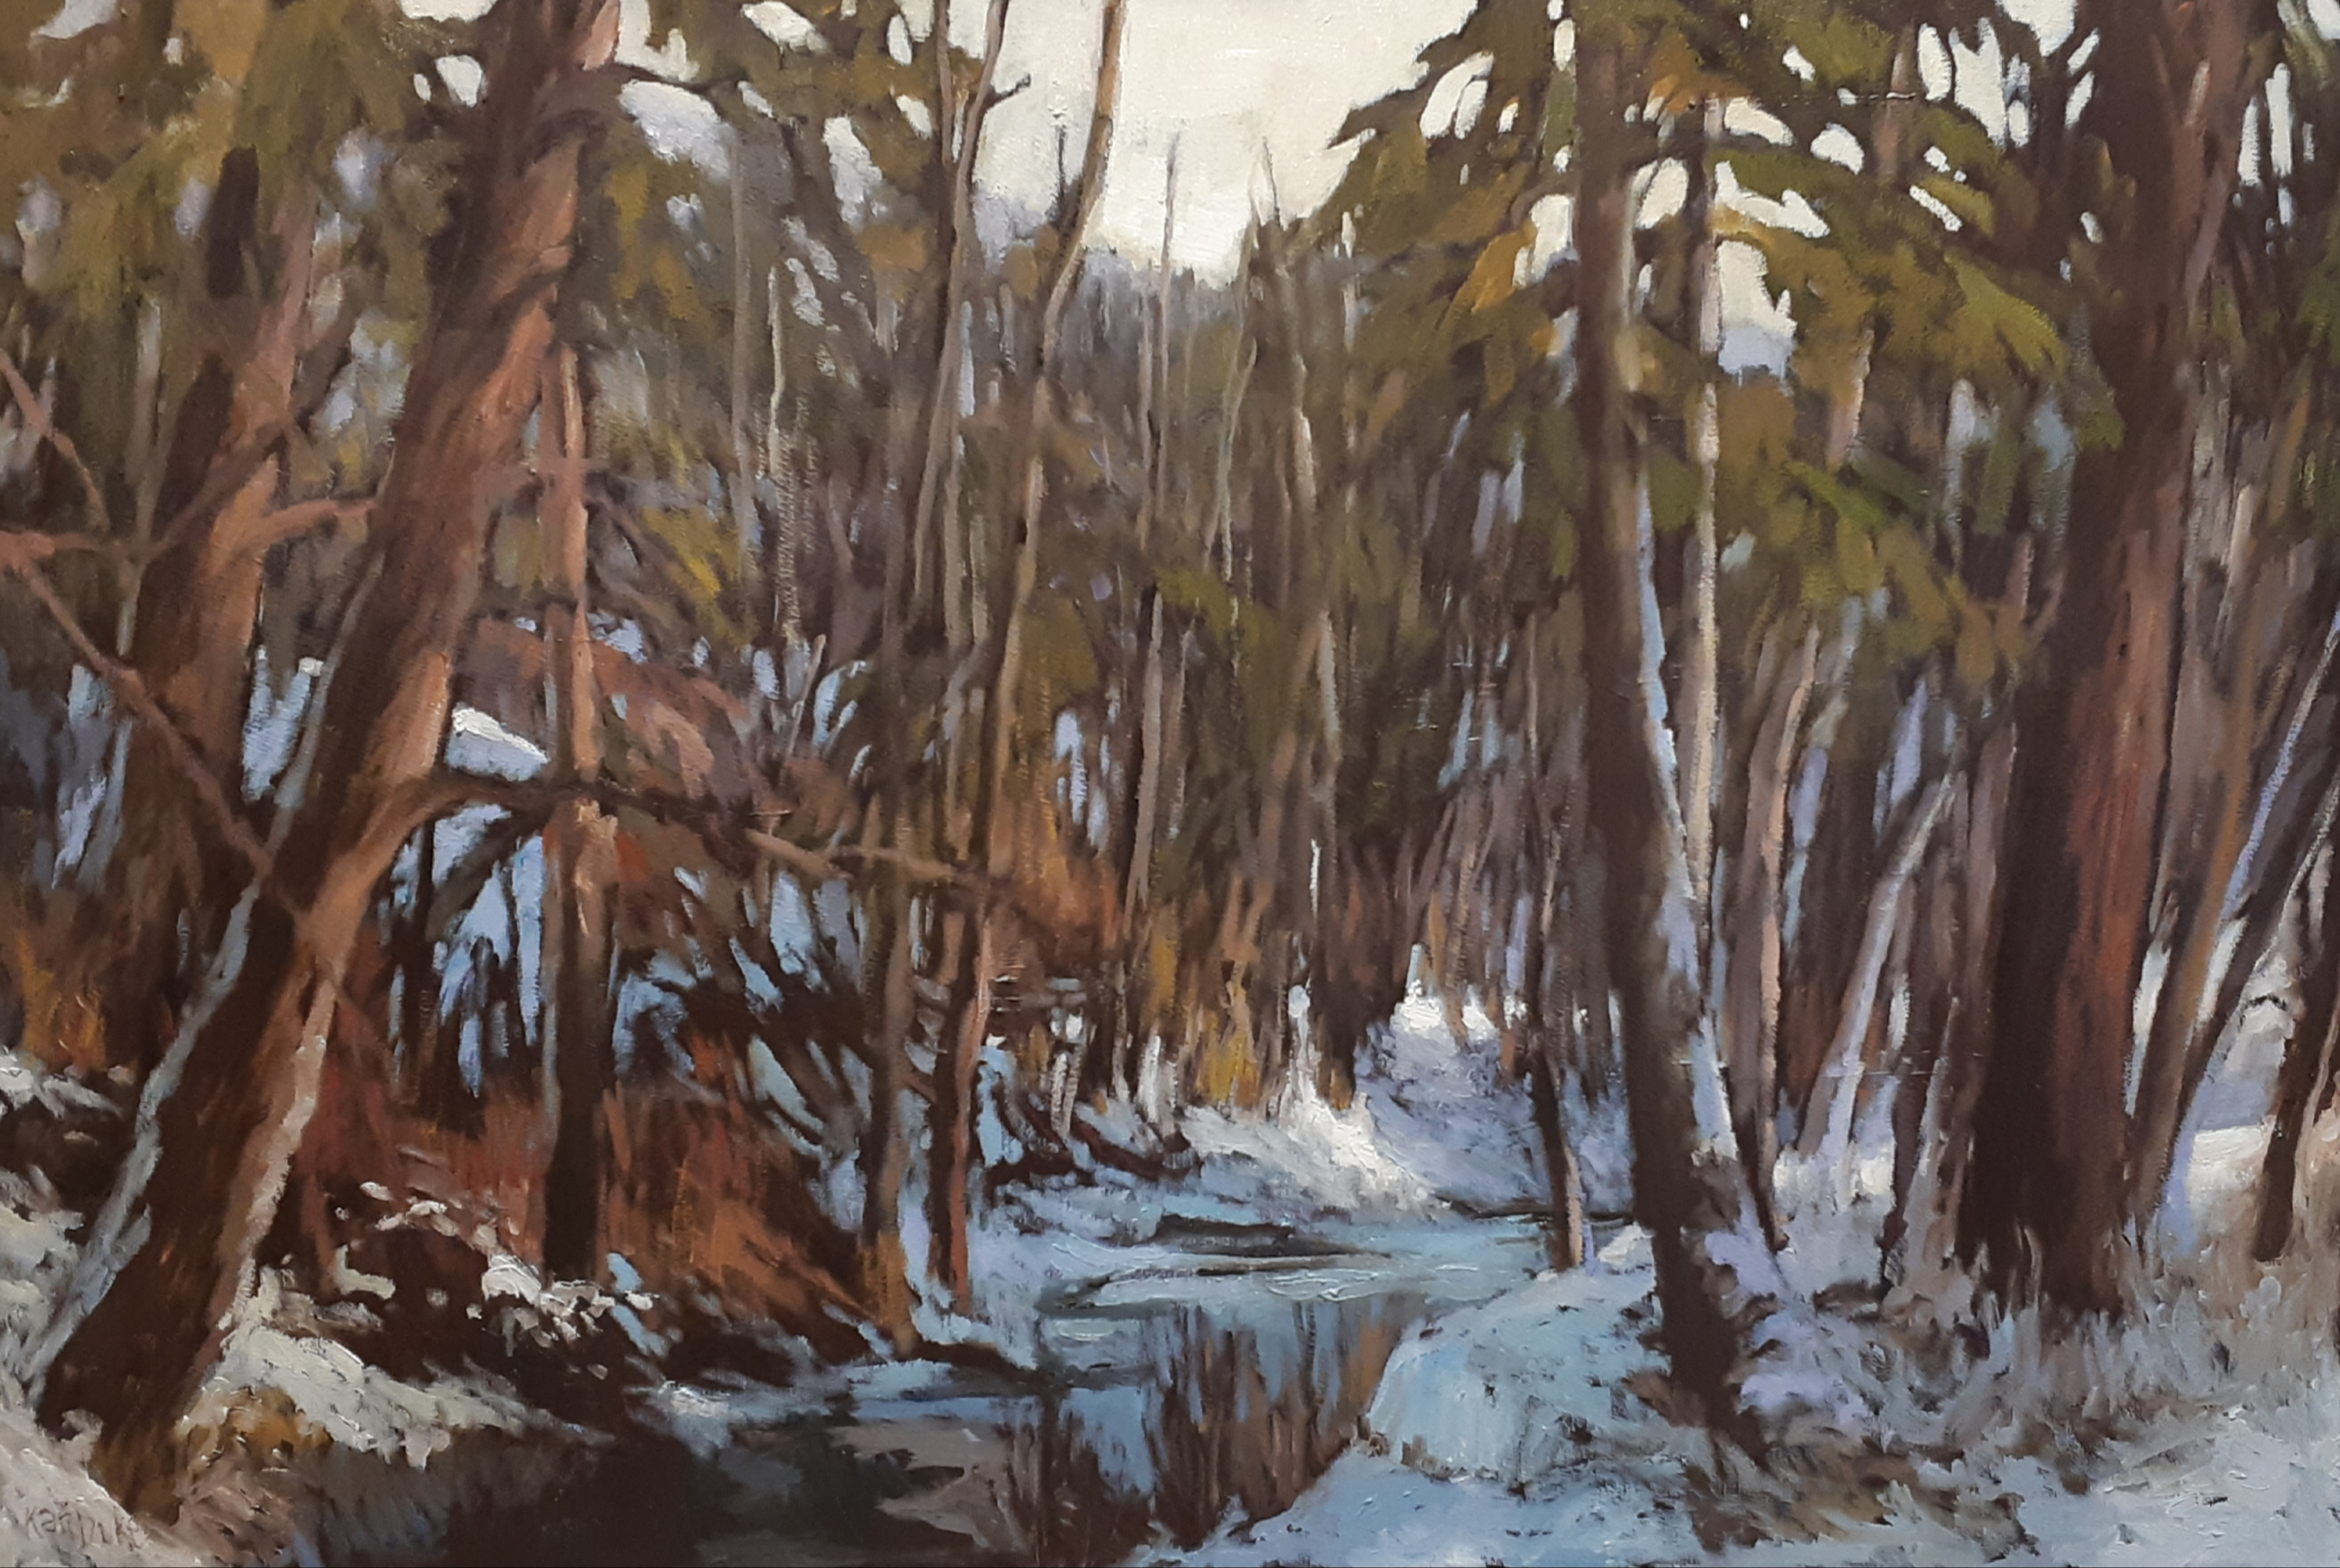 MILL CREEK RAVINE - 24X36 - OIL ON CANVAS - 2019